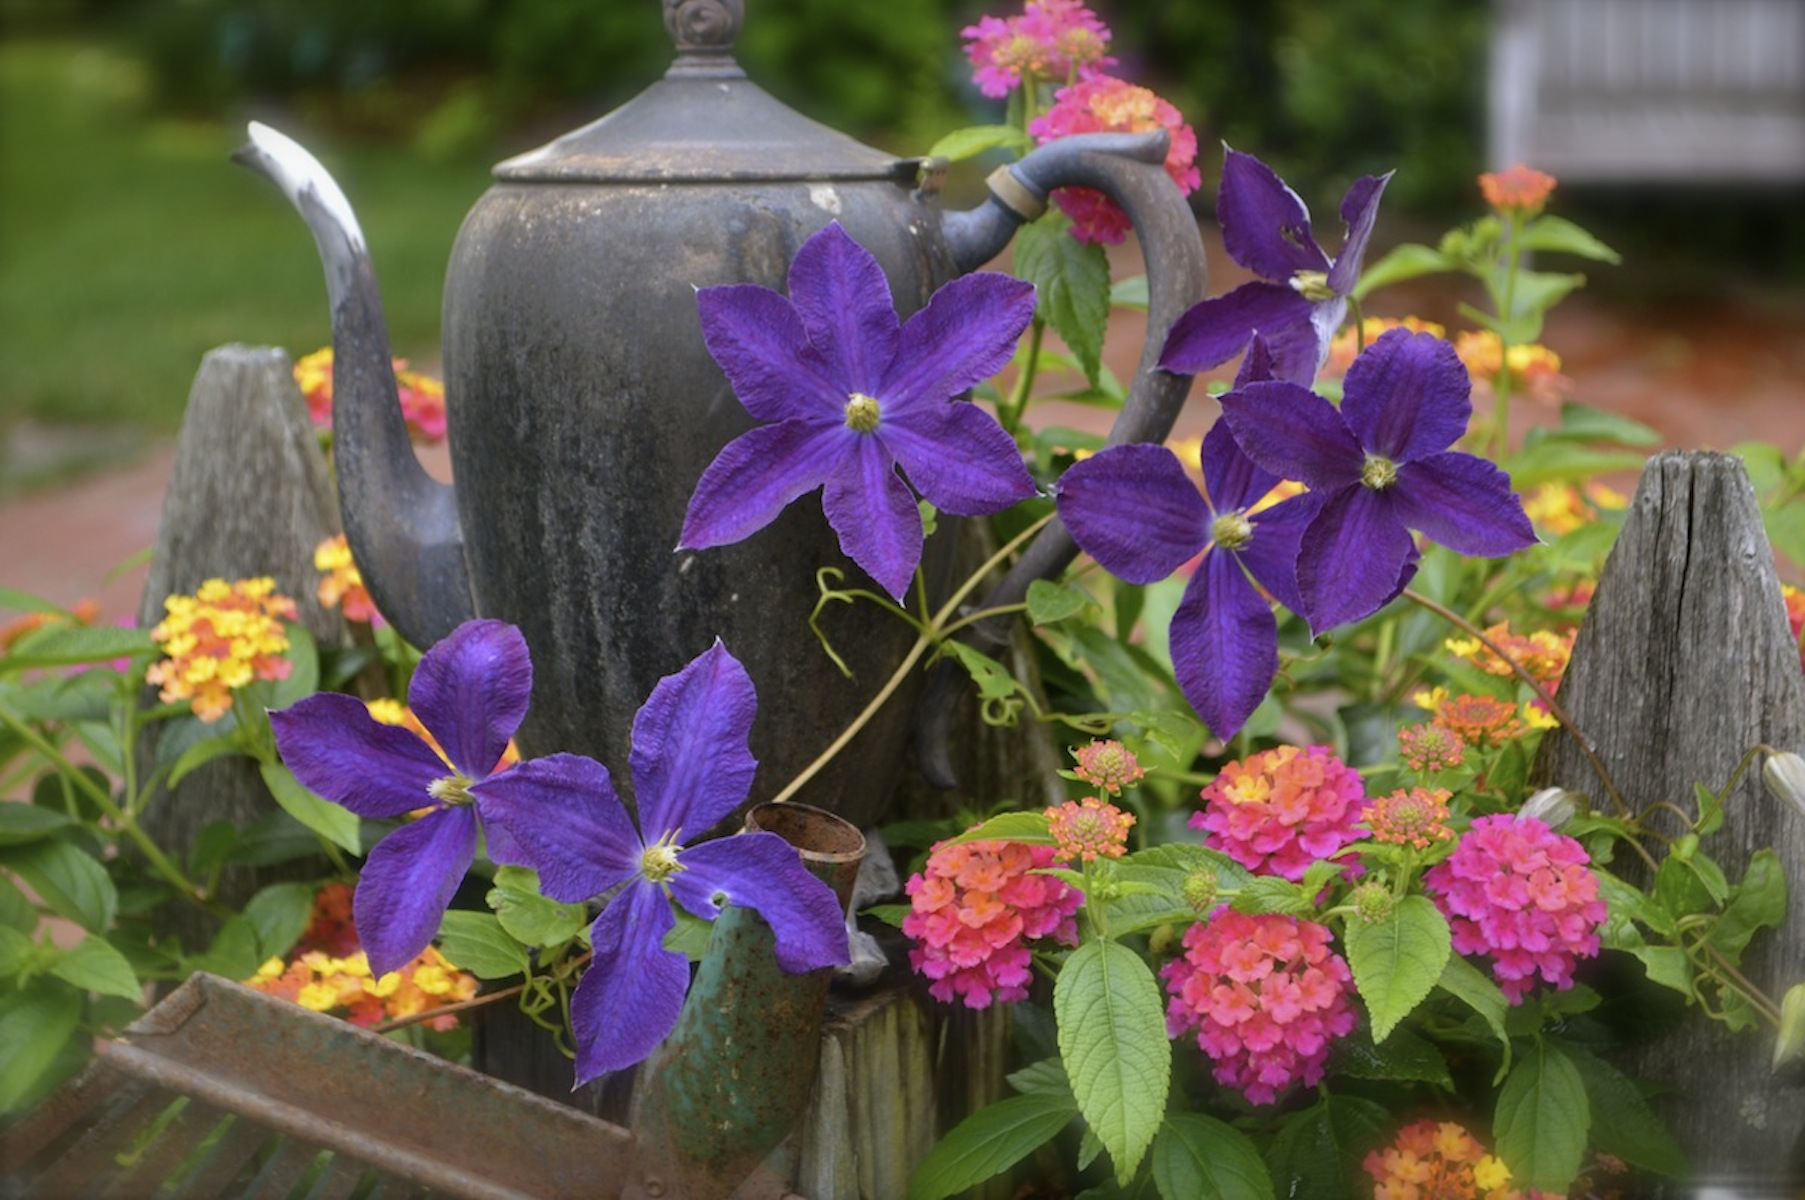 Purple Clematis vine growing up Picket Fence